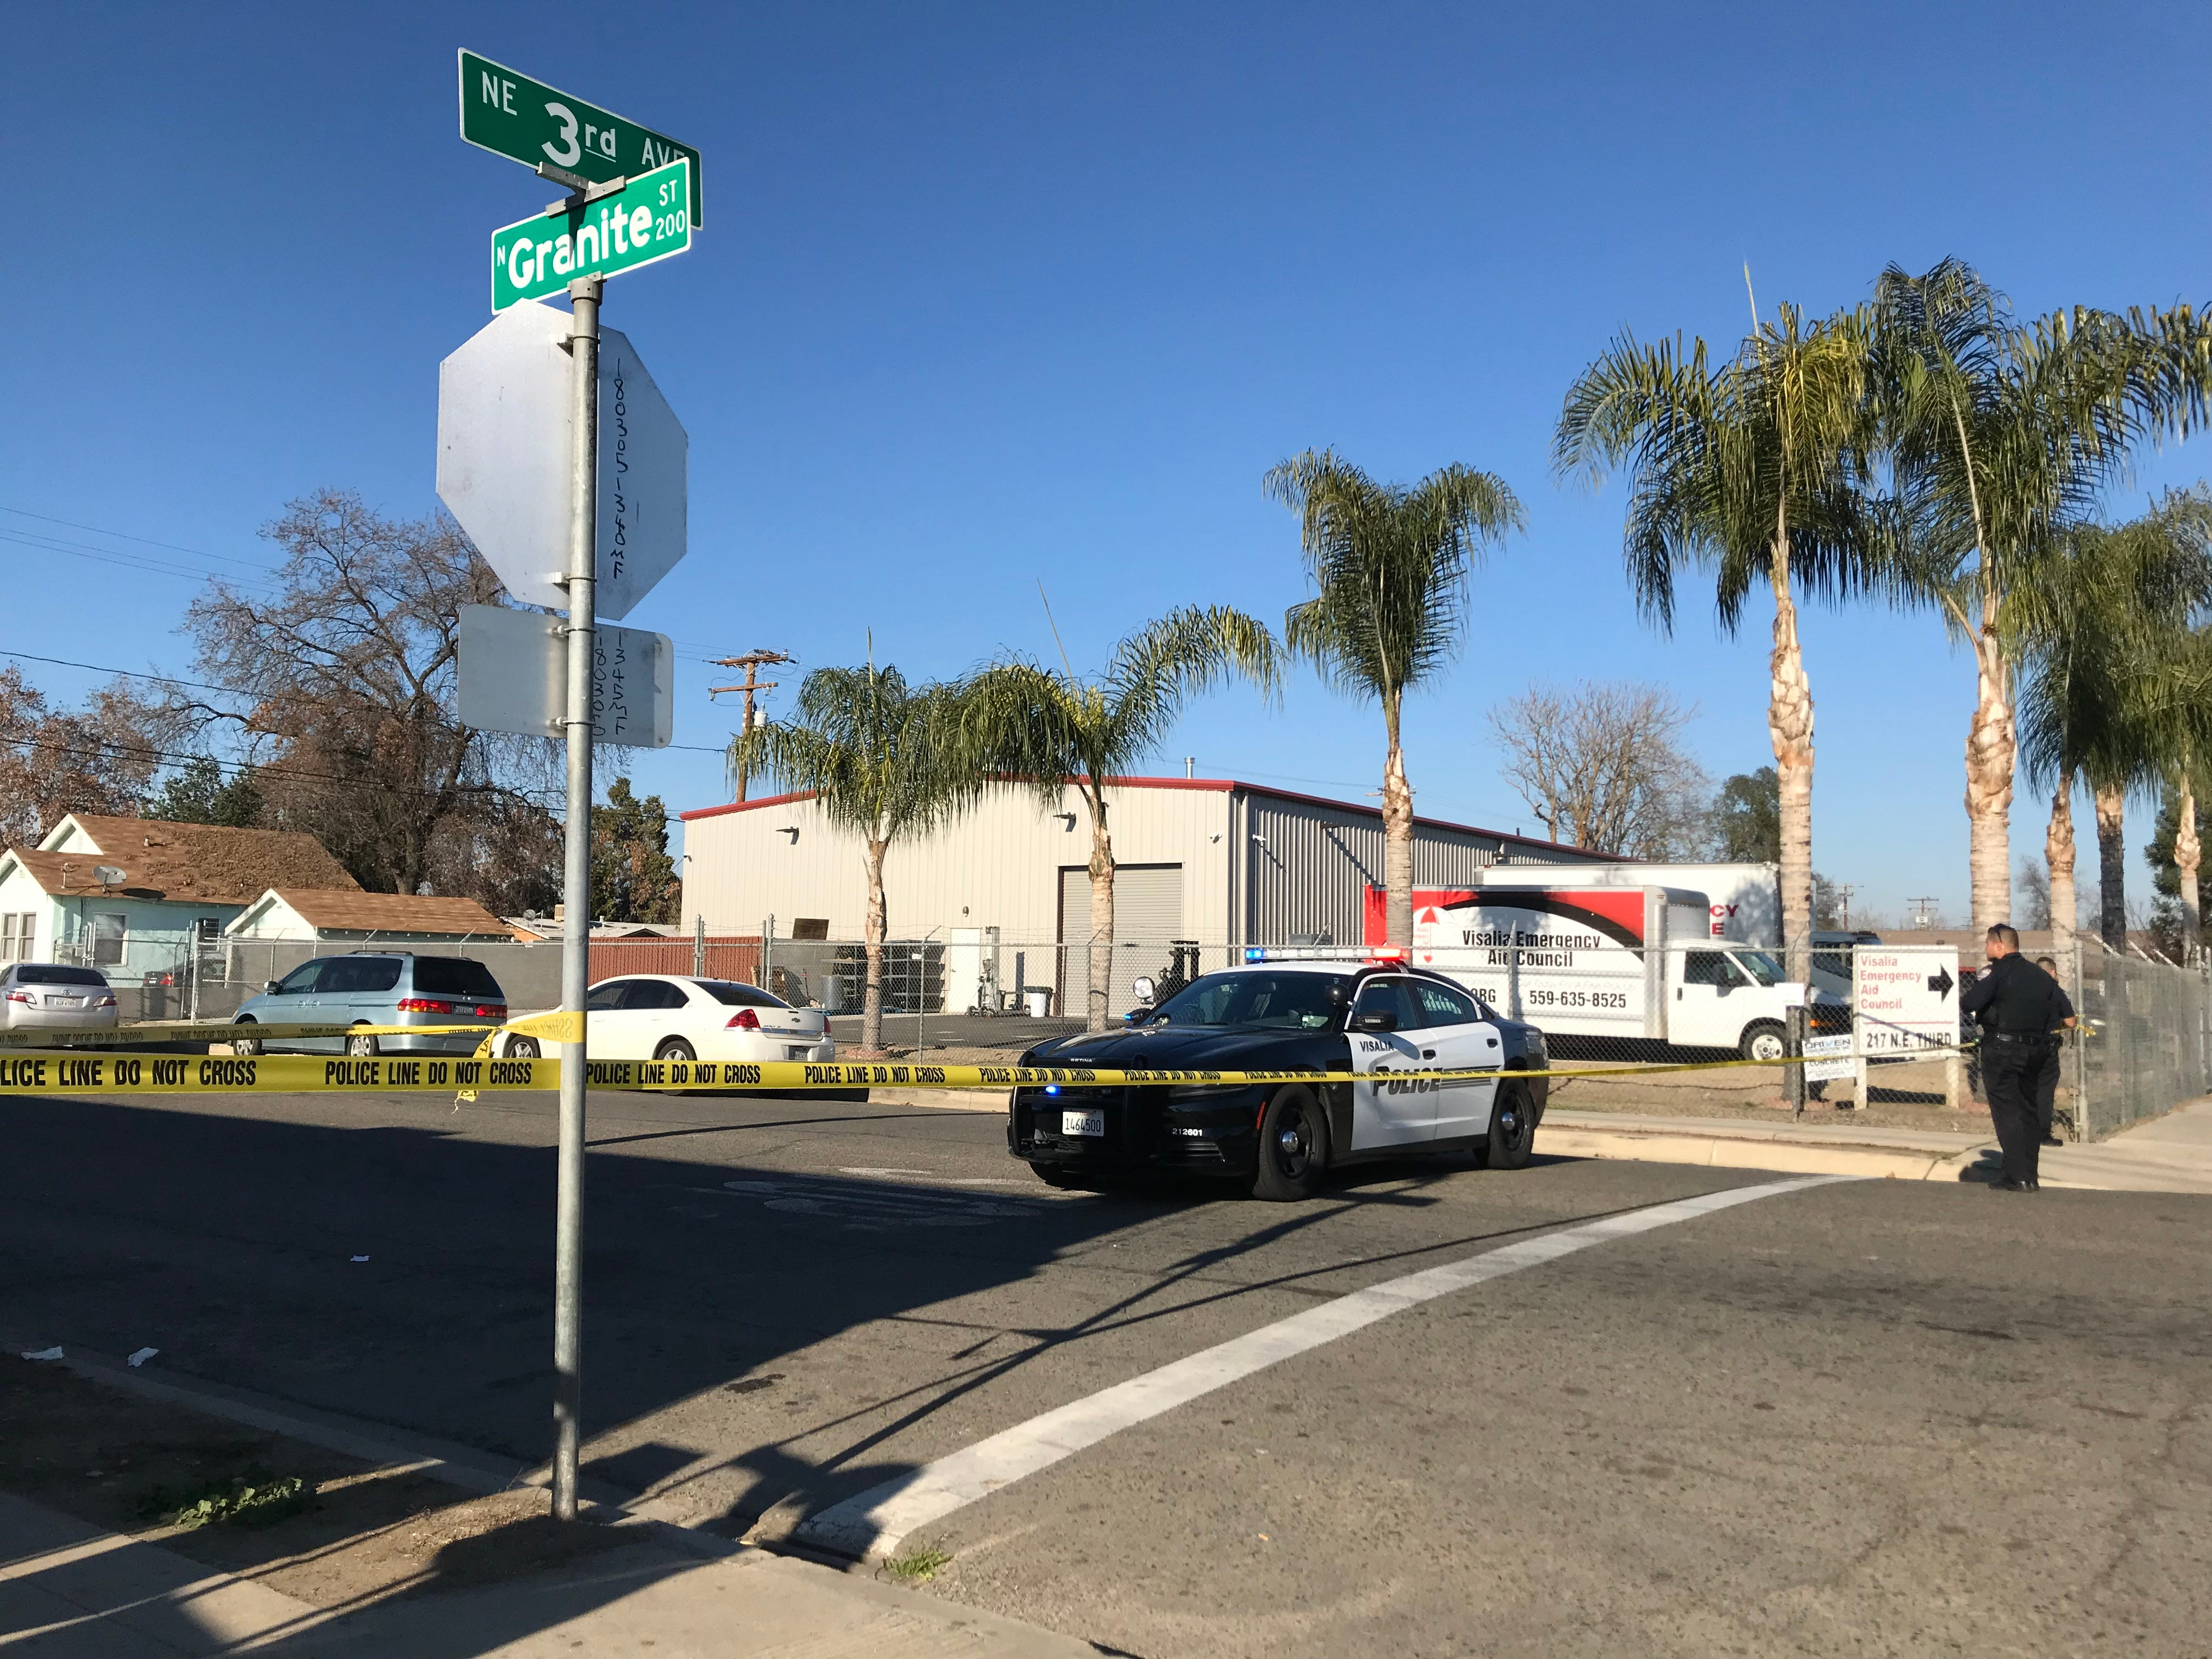 Police are engaged in a standoff with a man suspected of shooting his own brother near Oval Park. Roads are closed between 3rd Avenue and Granite Street.